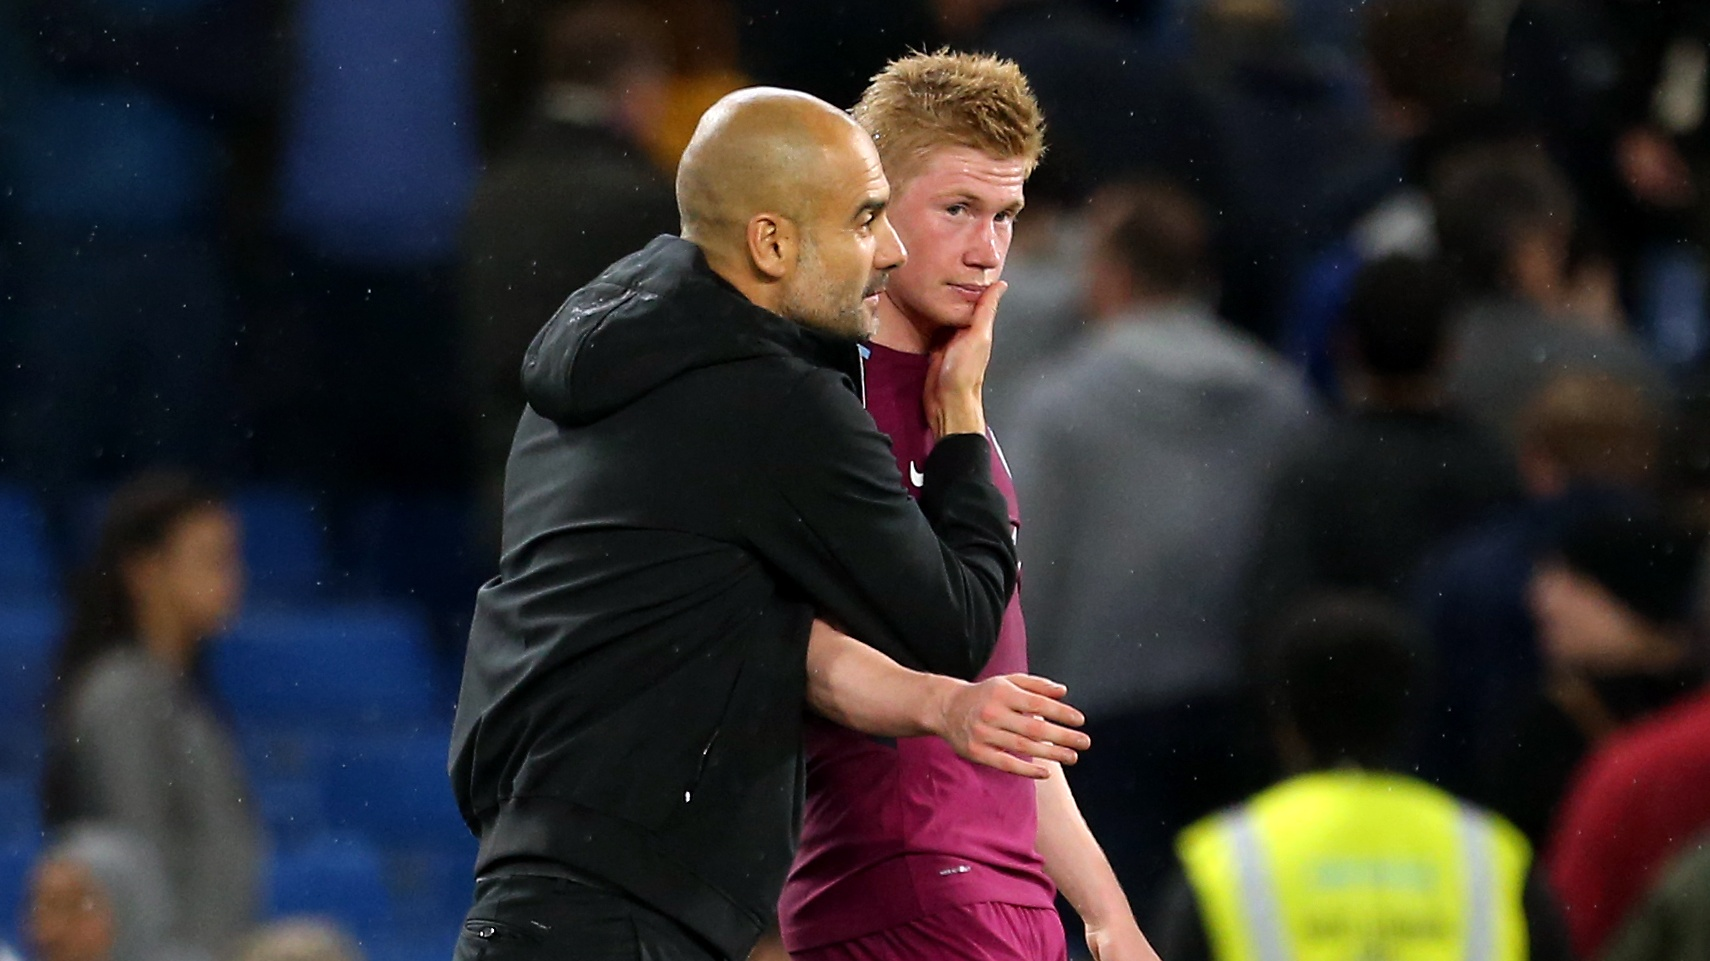 Pep Guardiola and Manchester City midfielder Kevin De Bruyne